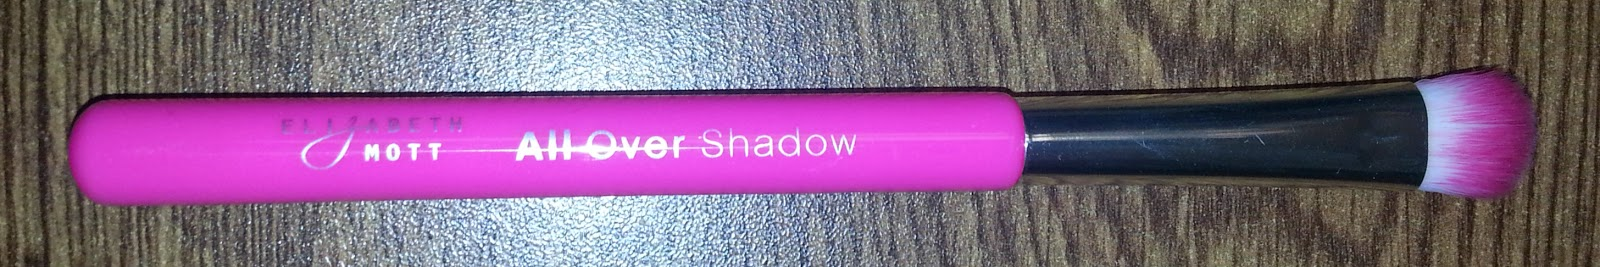 Elizabeth Mott All Over Shadow Brush